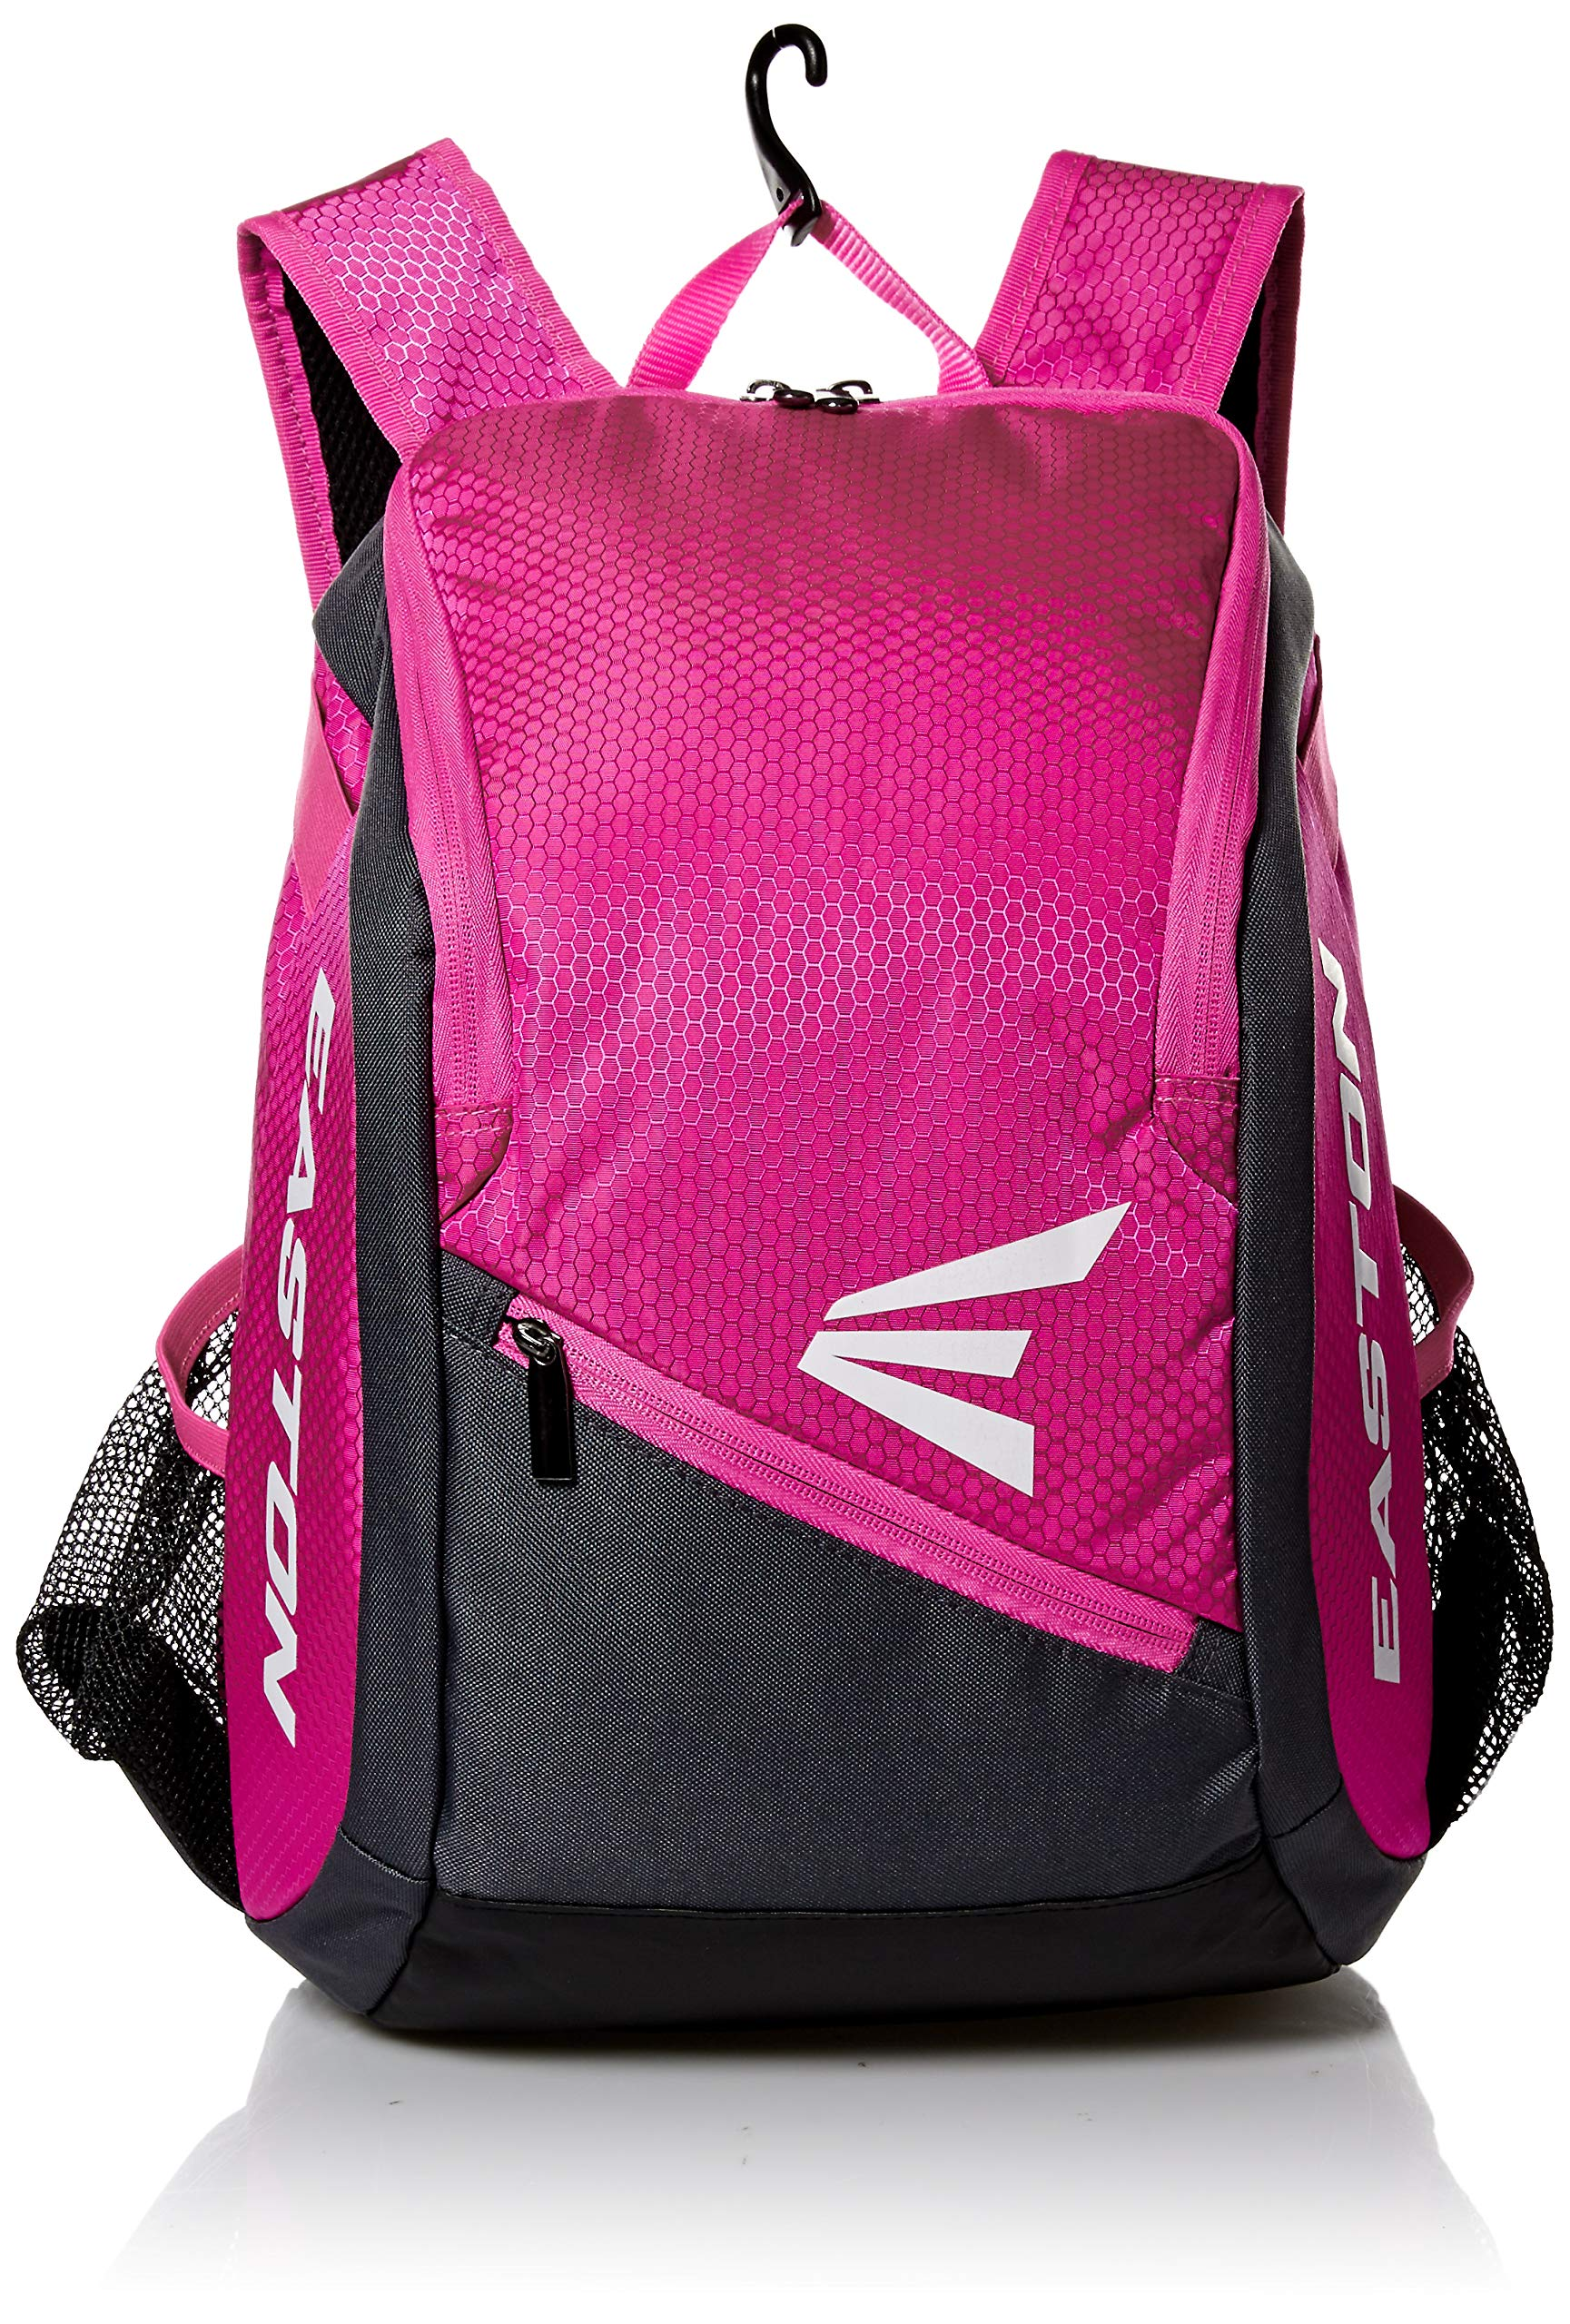 EASTON GAME READY Youth Bat & Equipment Backpack Bag | Baseball Softball | 2019 | Pink | 2 Bat Pockets | Vented Main Compartment | Vented Shoe Pocket | Valuables Pocket | Fence Hook by Easton